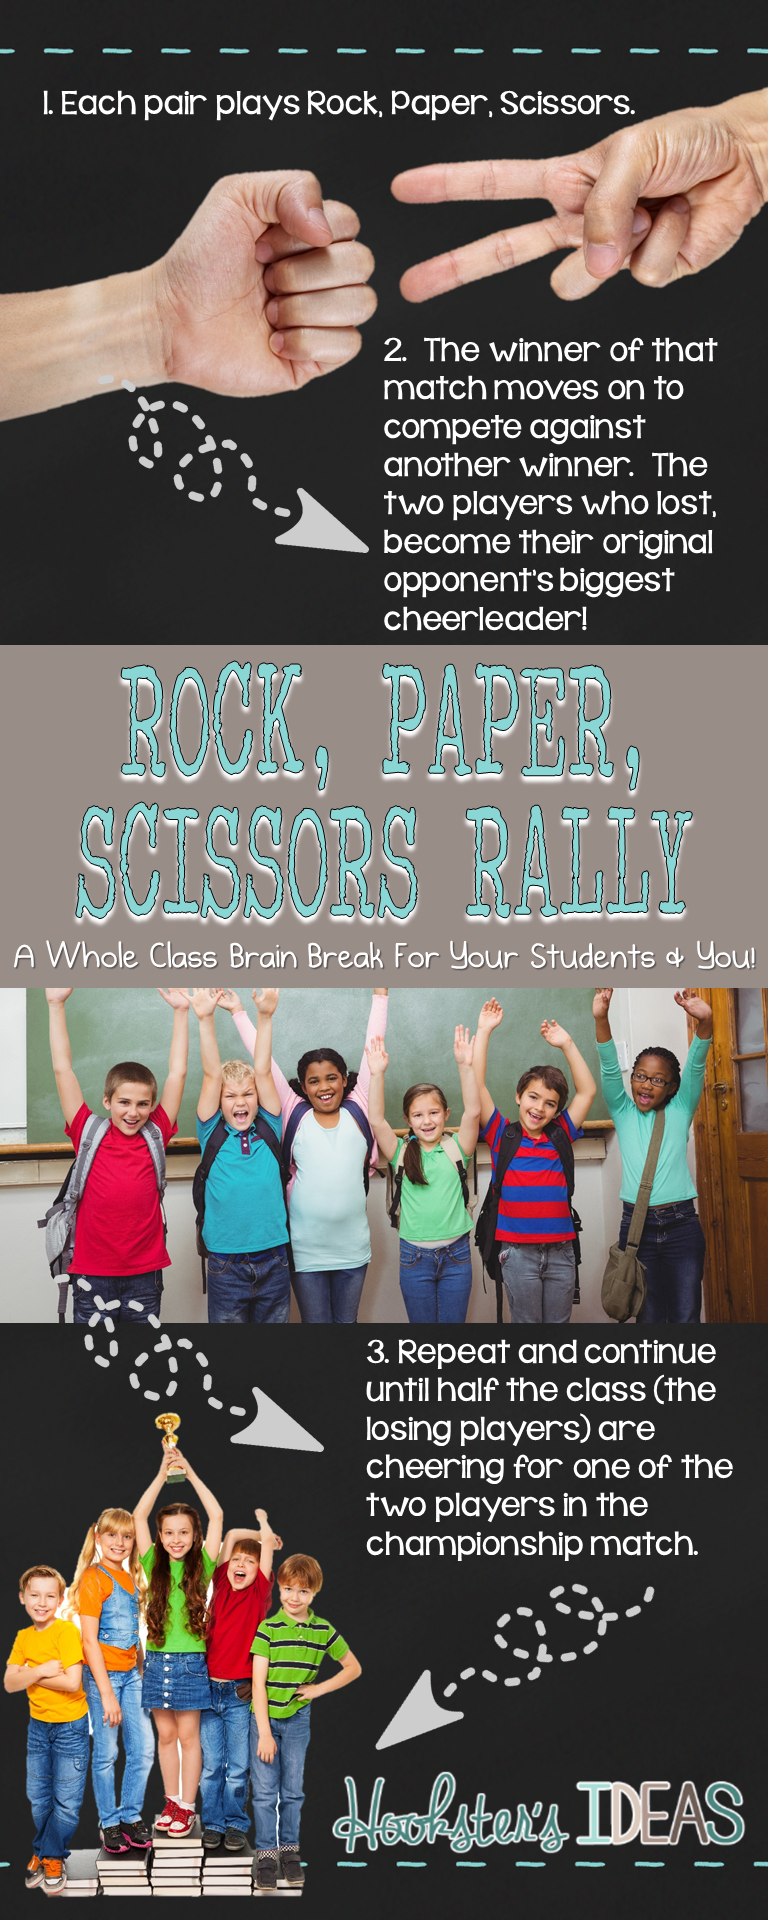 This whole class game will get your students energized and can be done mid-testing and post-testing to release some stress.